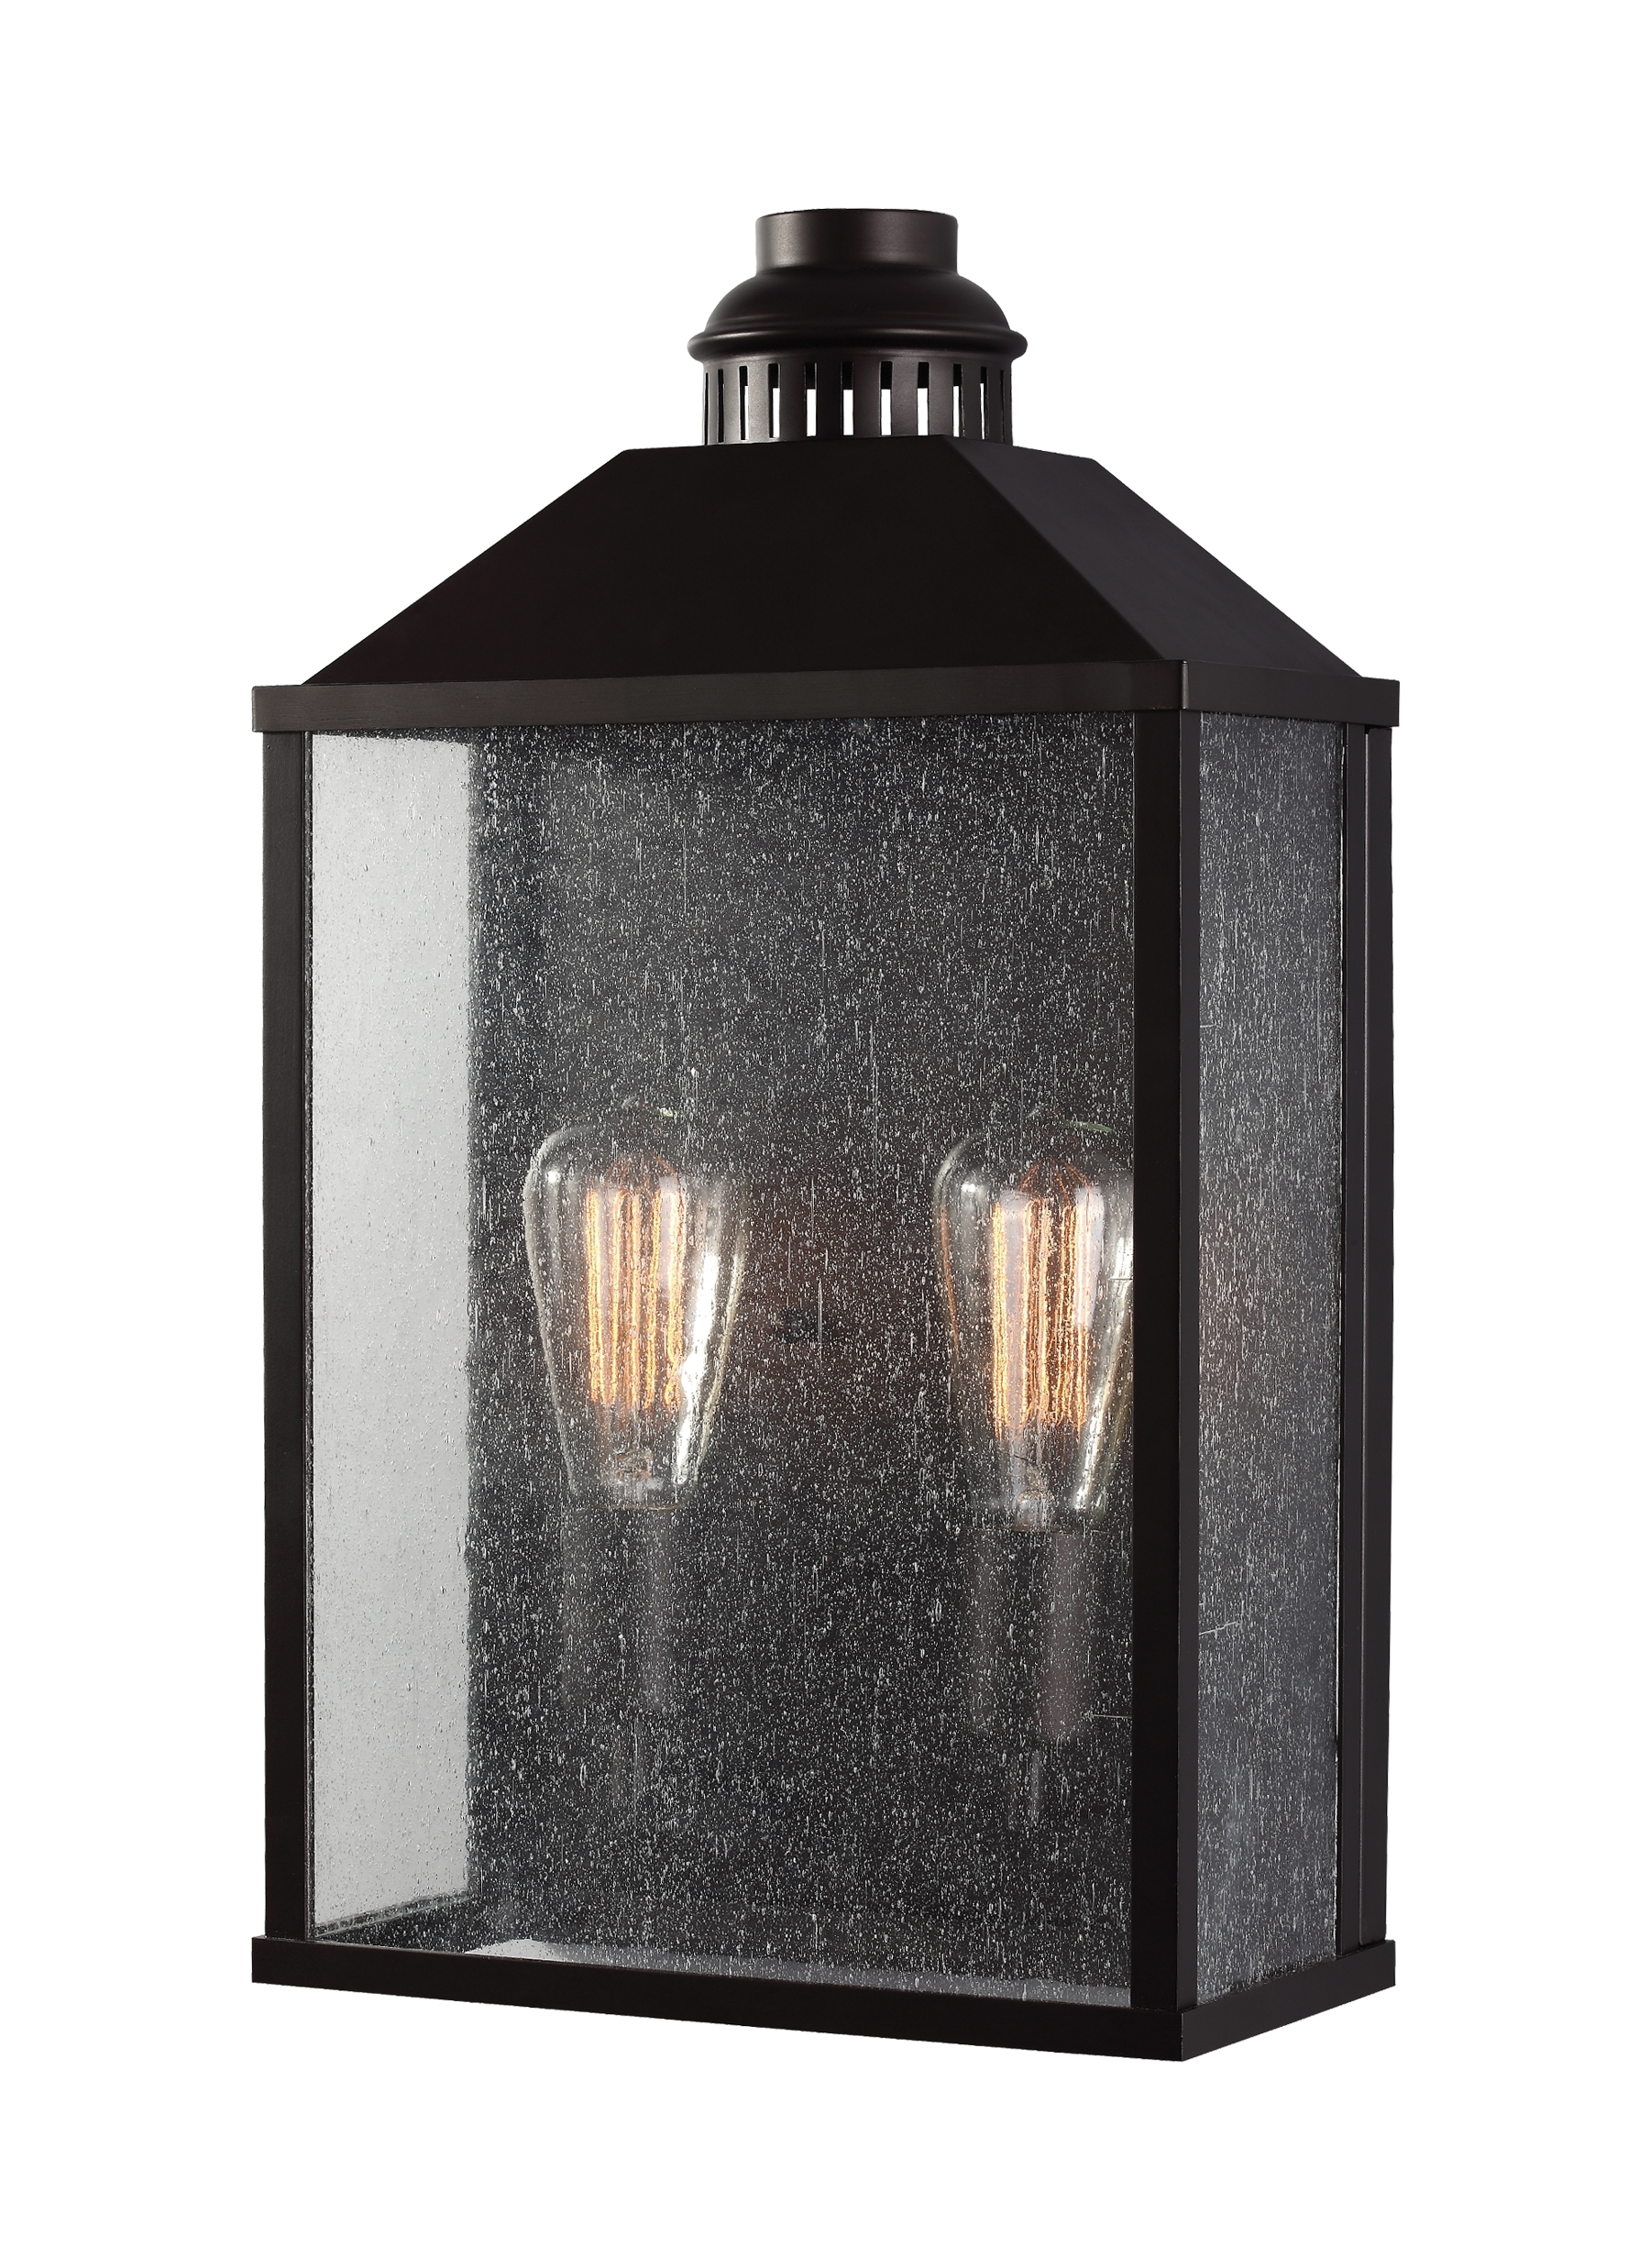 Ol18011orb,2 – Light Outdoor Wall Sconce,oil Rubbed Bronze Regarding Most Current Outdoor Oil Lanterns For Patio (View 5 of 20)